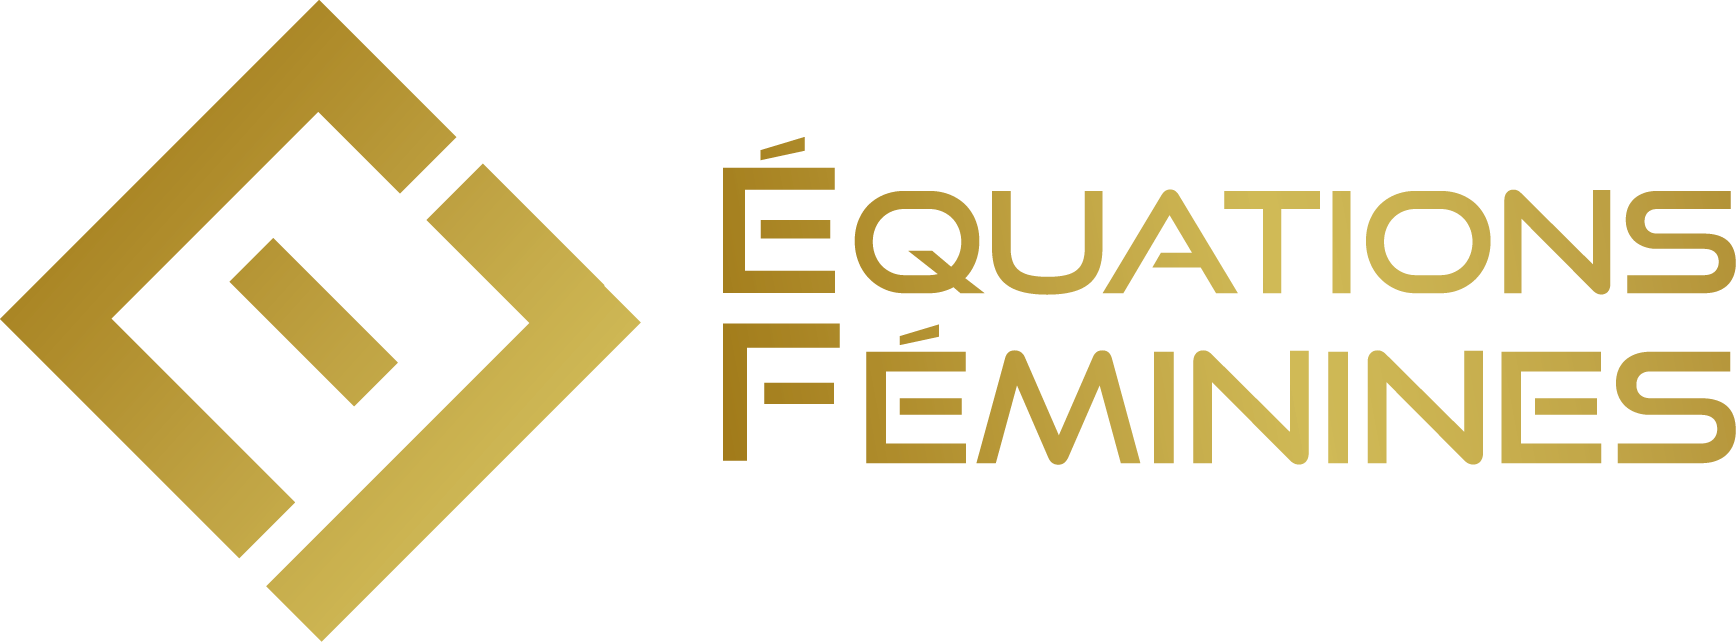 Equation Féminine